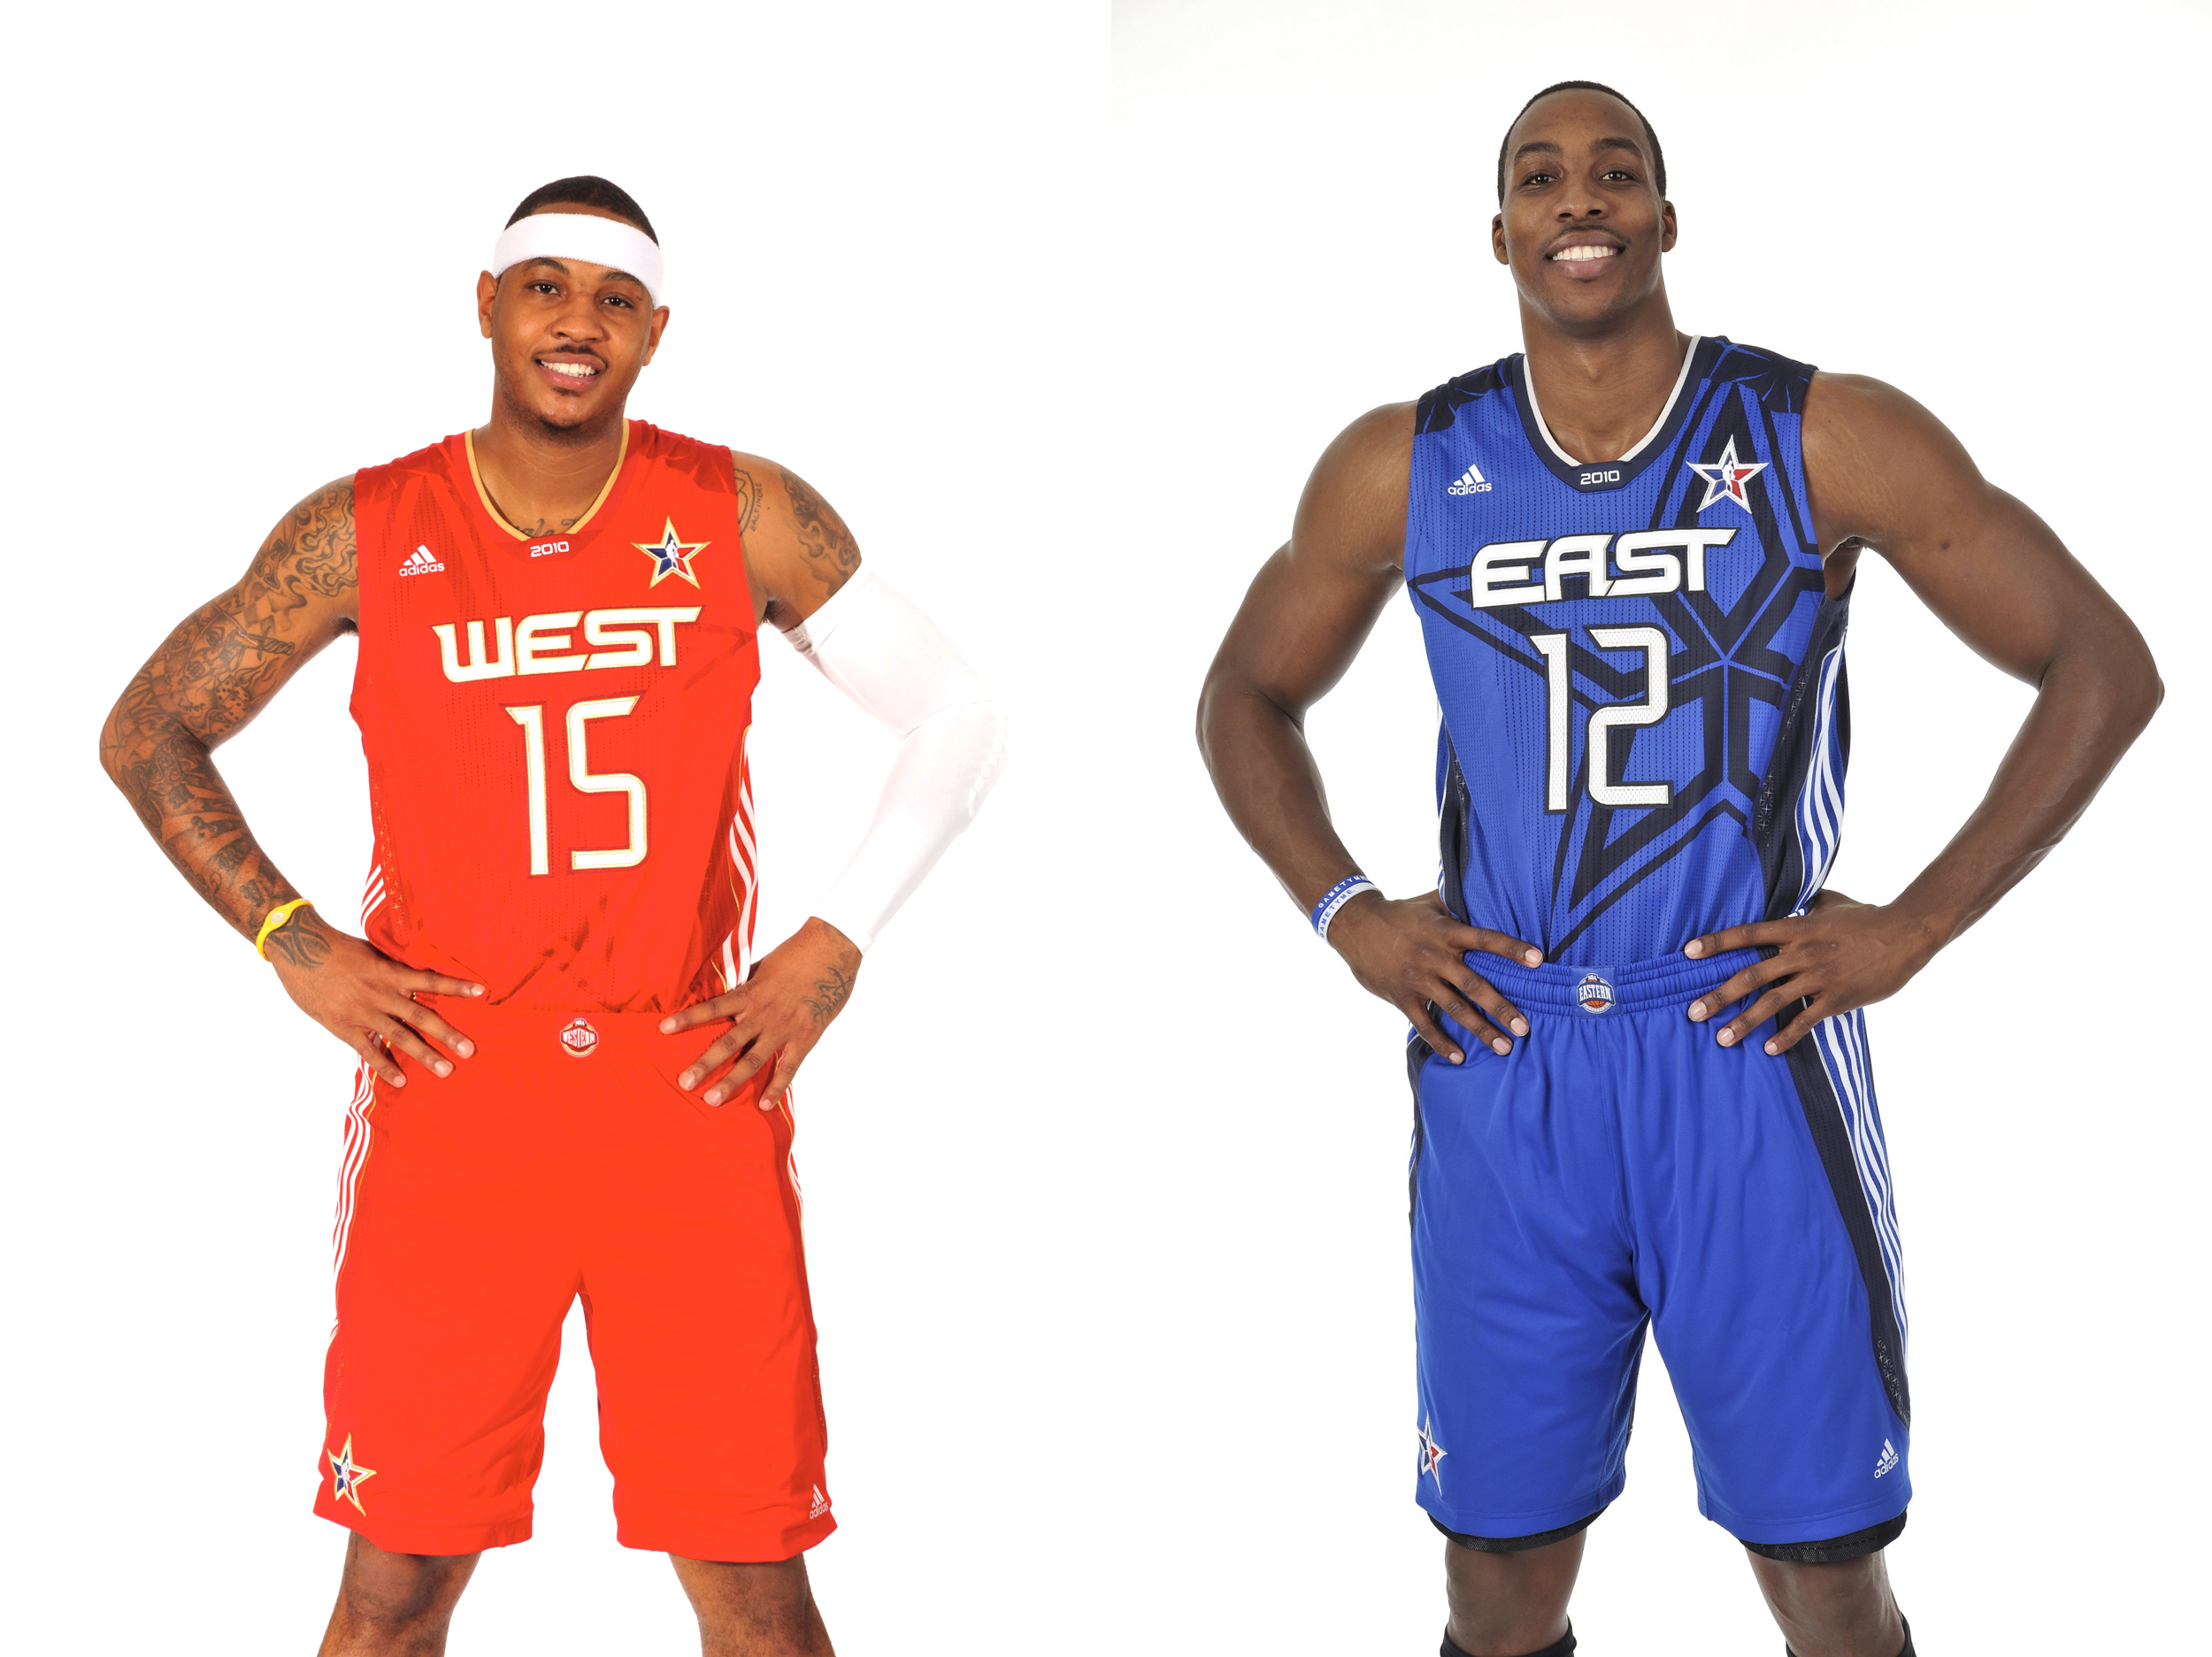 2f9763682c4d Carmelo Anthony  15 of the Denver Nuggets and Dwight Howard  12 of the  Orlando